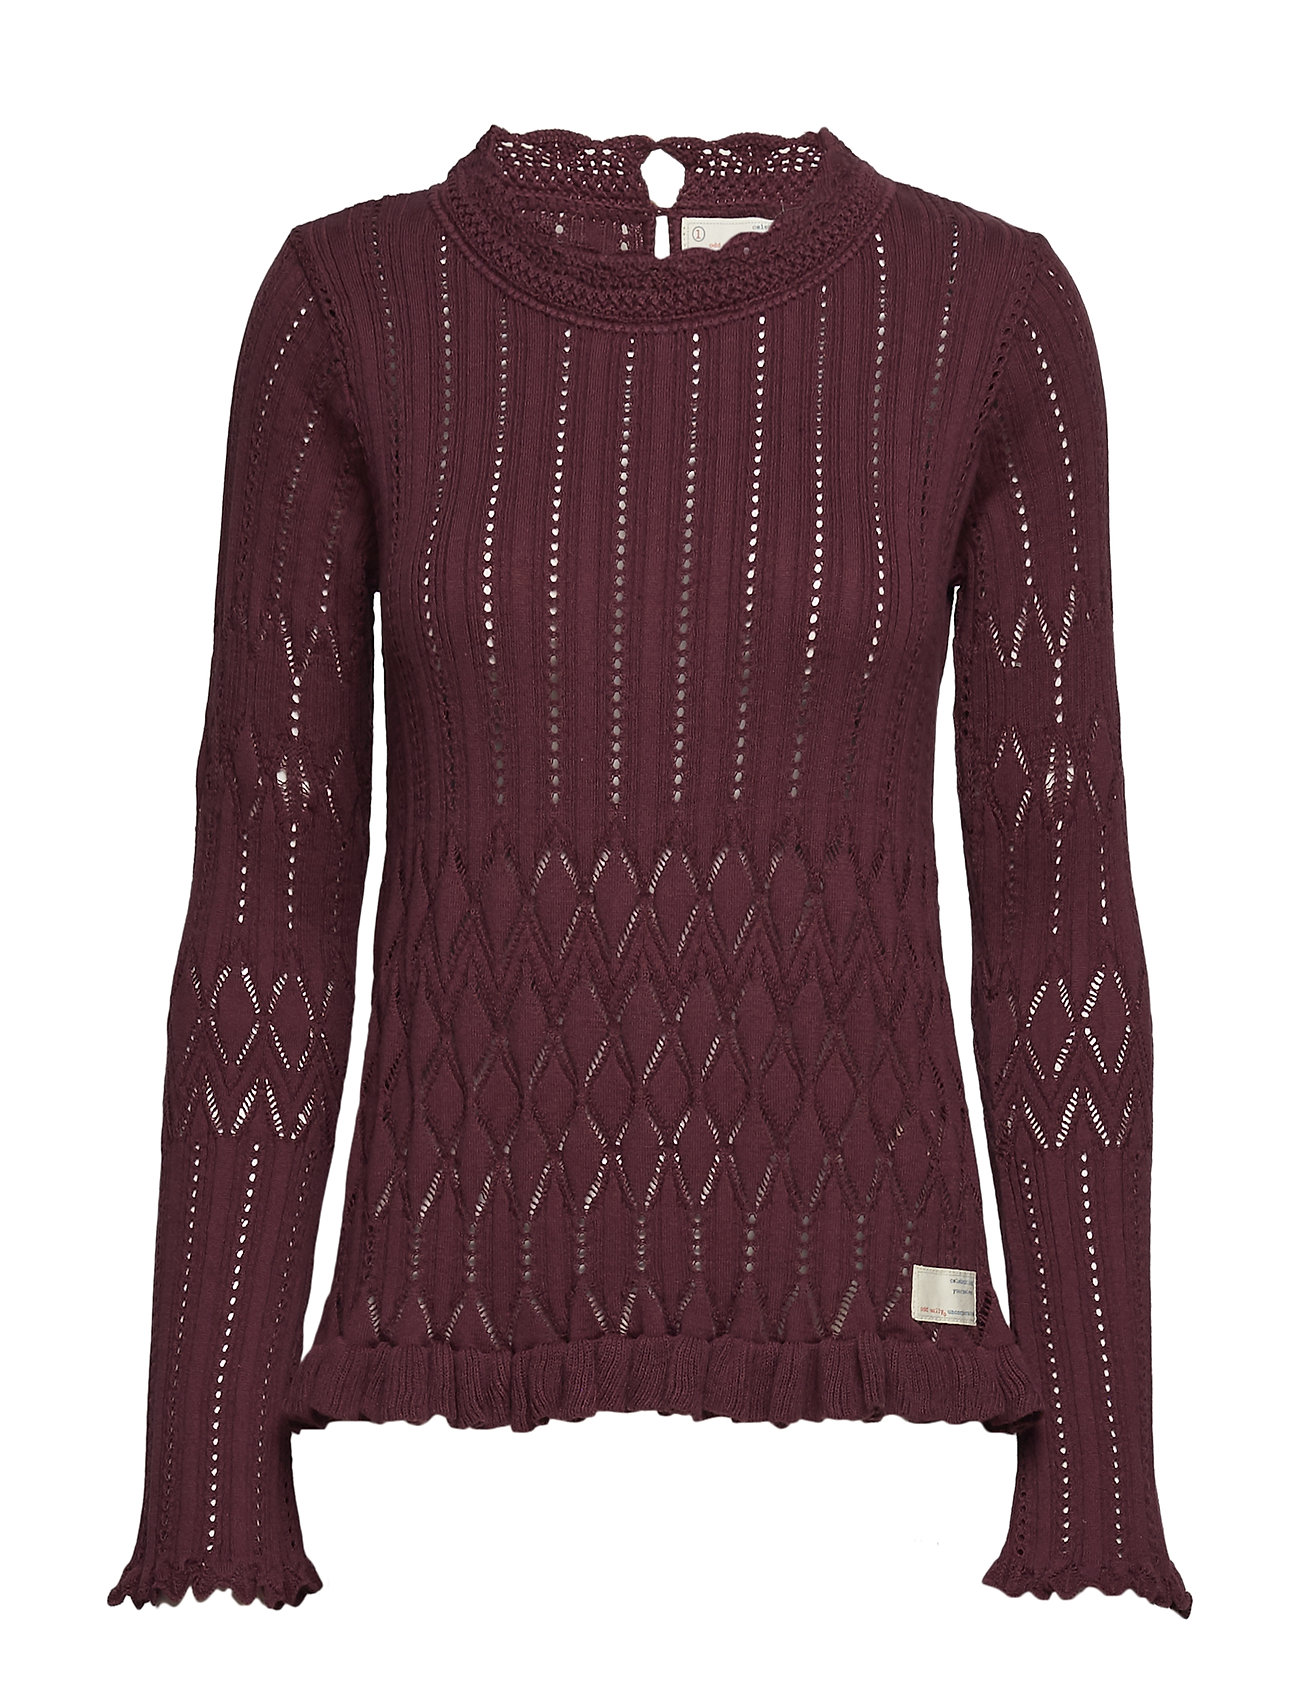 a1c9bfb0b Pretty On The Loose Sweater (Burgundy) (86.19 €) - ODD MOLLY ...